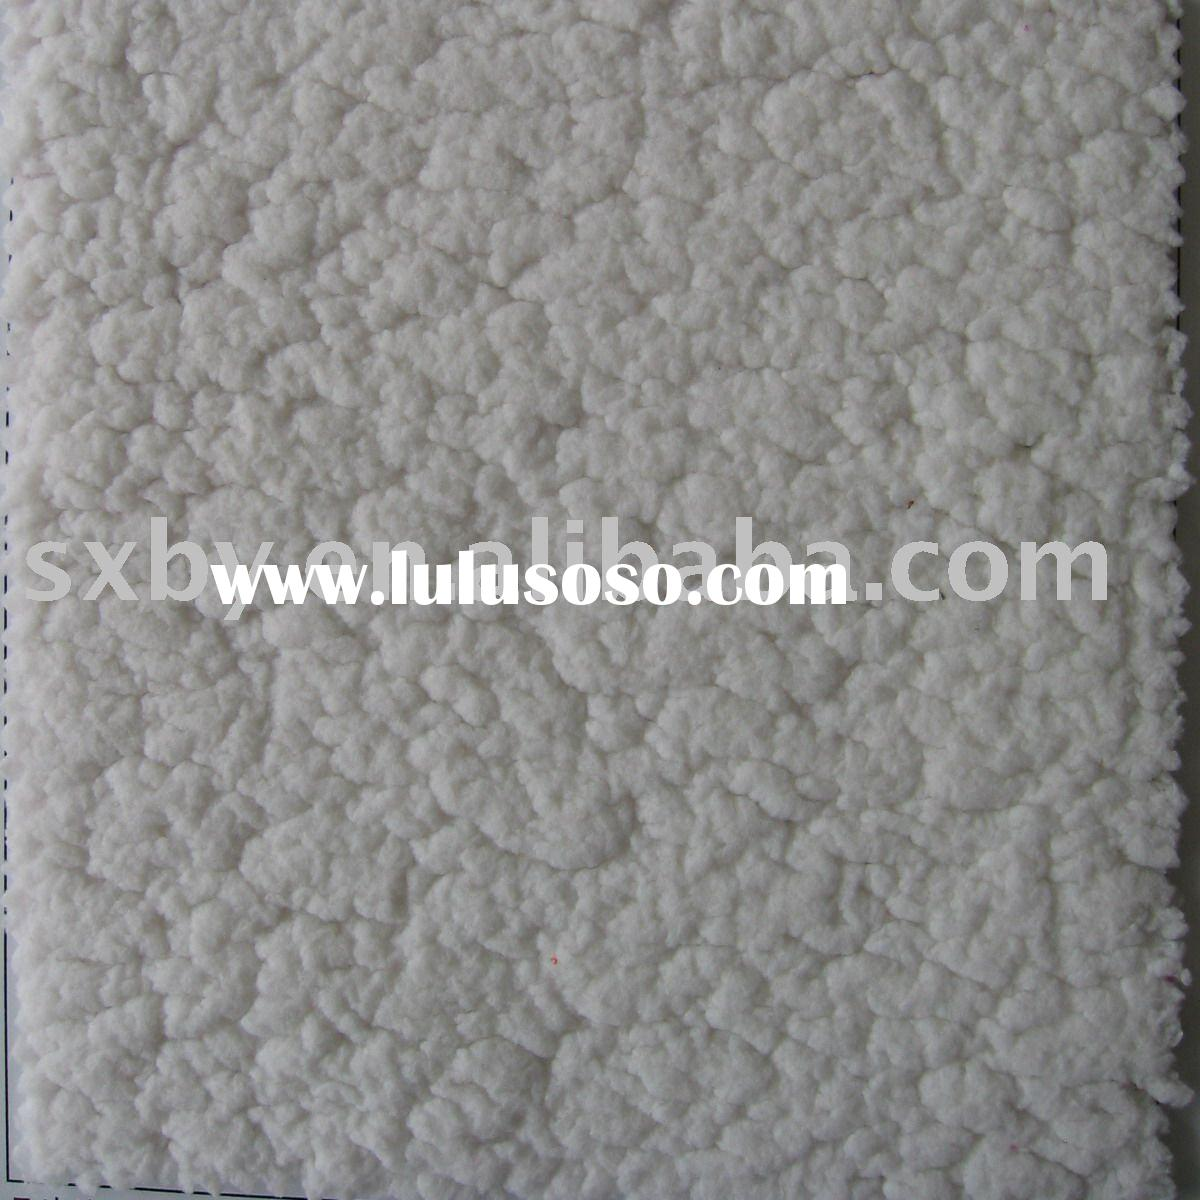 Cotton fleece fabric bonding with polar fleece fabric